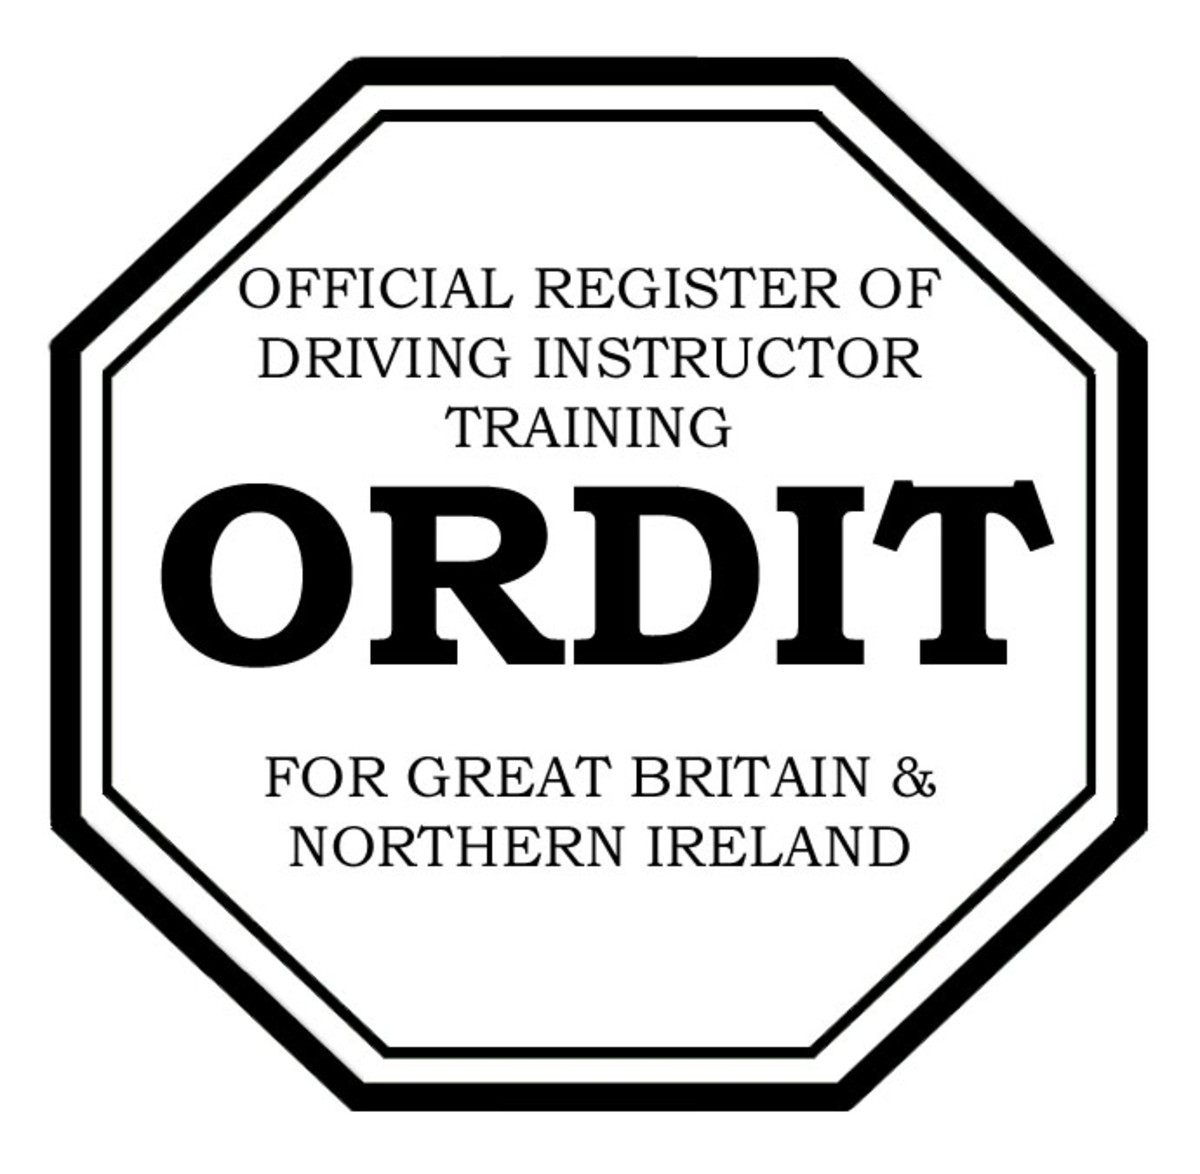 ORDIT stands for The Official Register of Driving Instructor Training